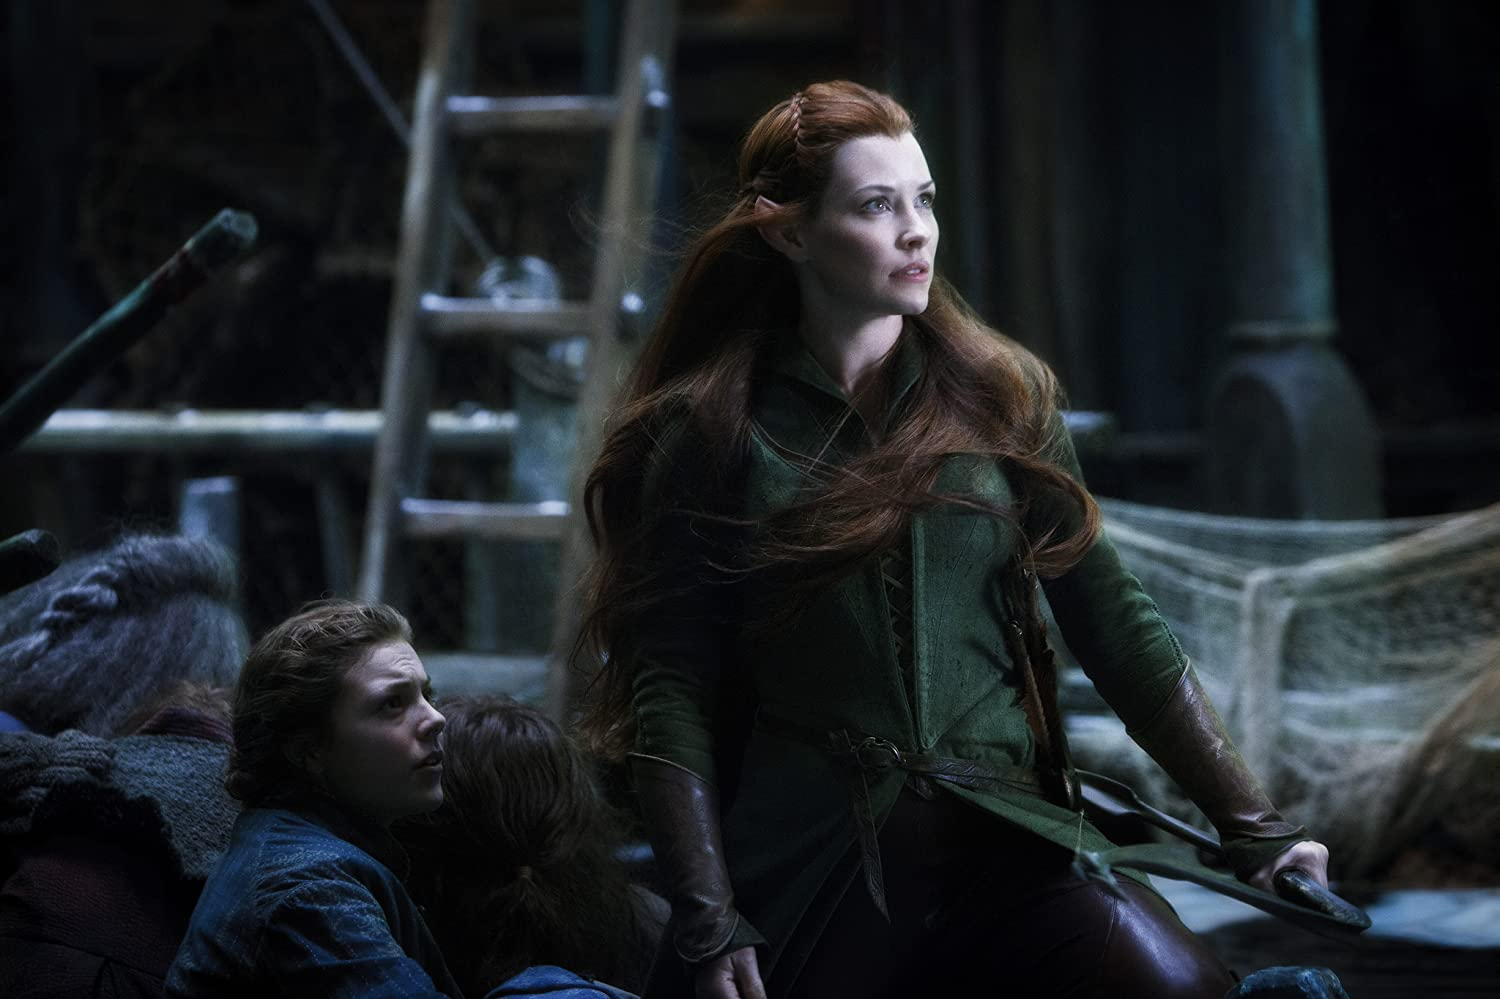 Evangeline Lilly and Peggy Nesbitt in The Hobbit: The Battle of the Five Armies (2014)